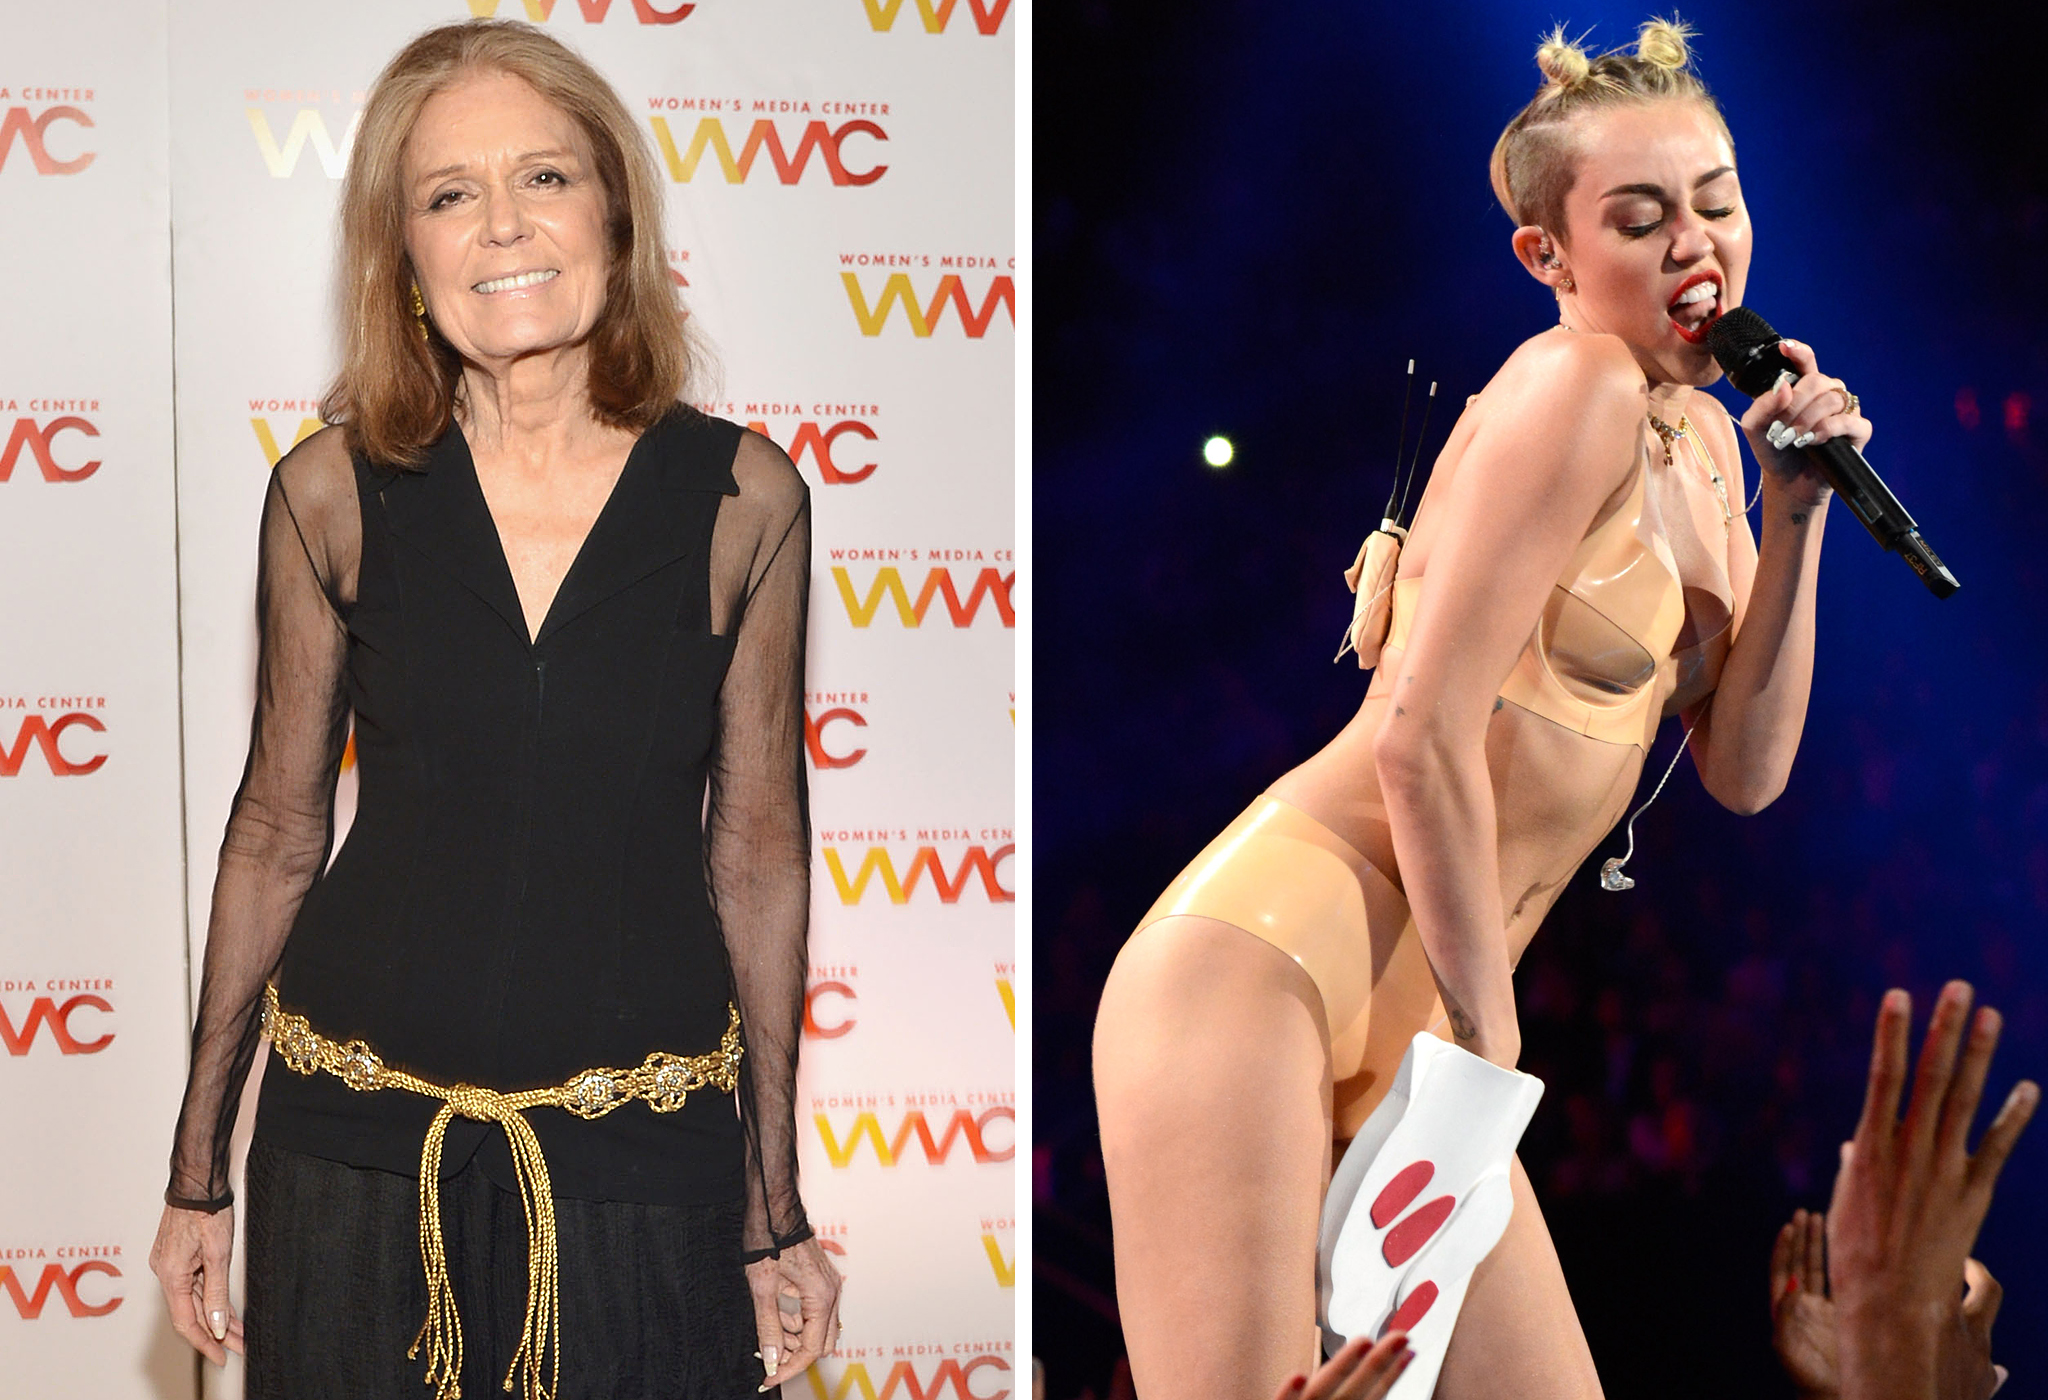 Gloria Steinem Weighs in On All the Miley Controversy